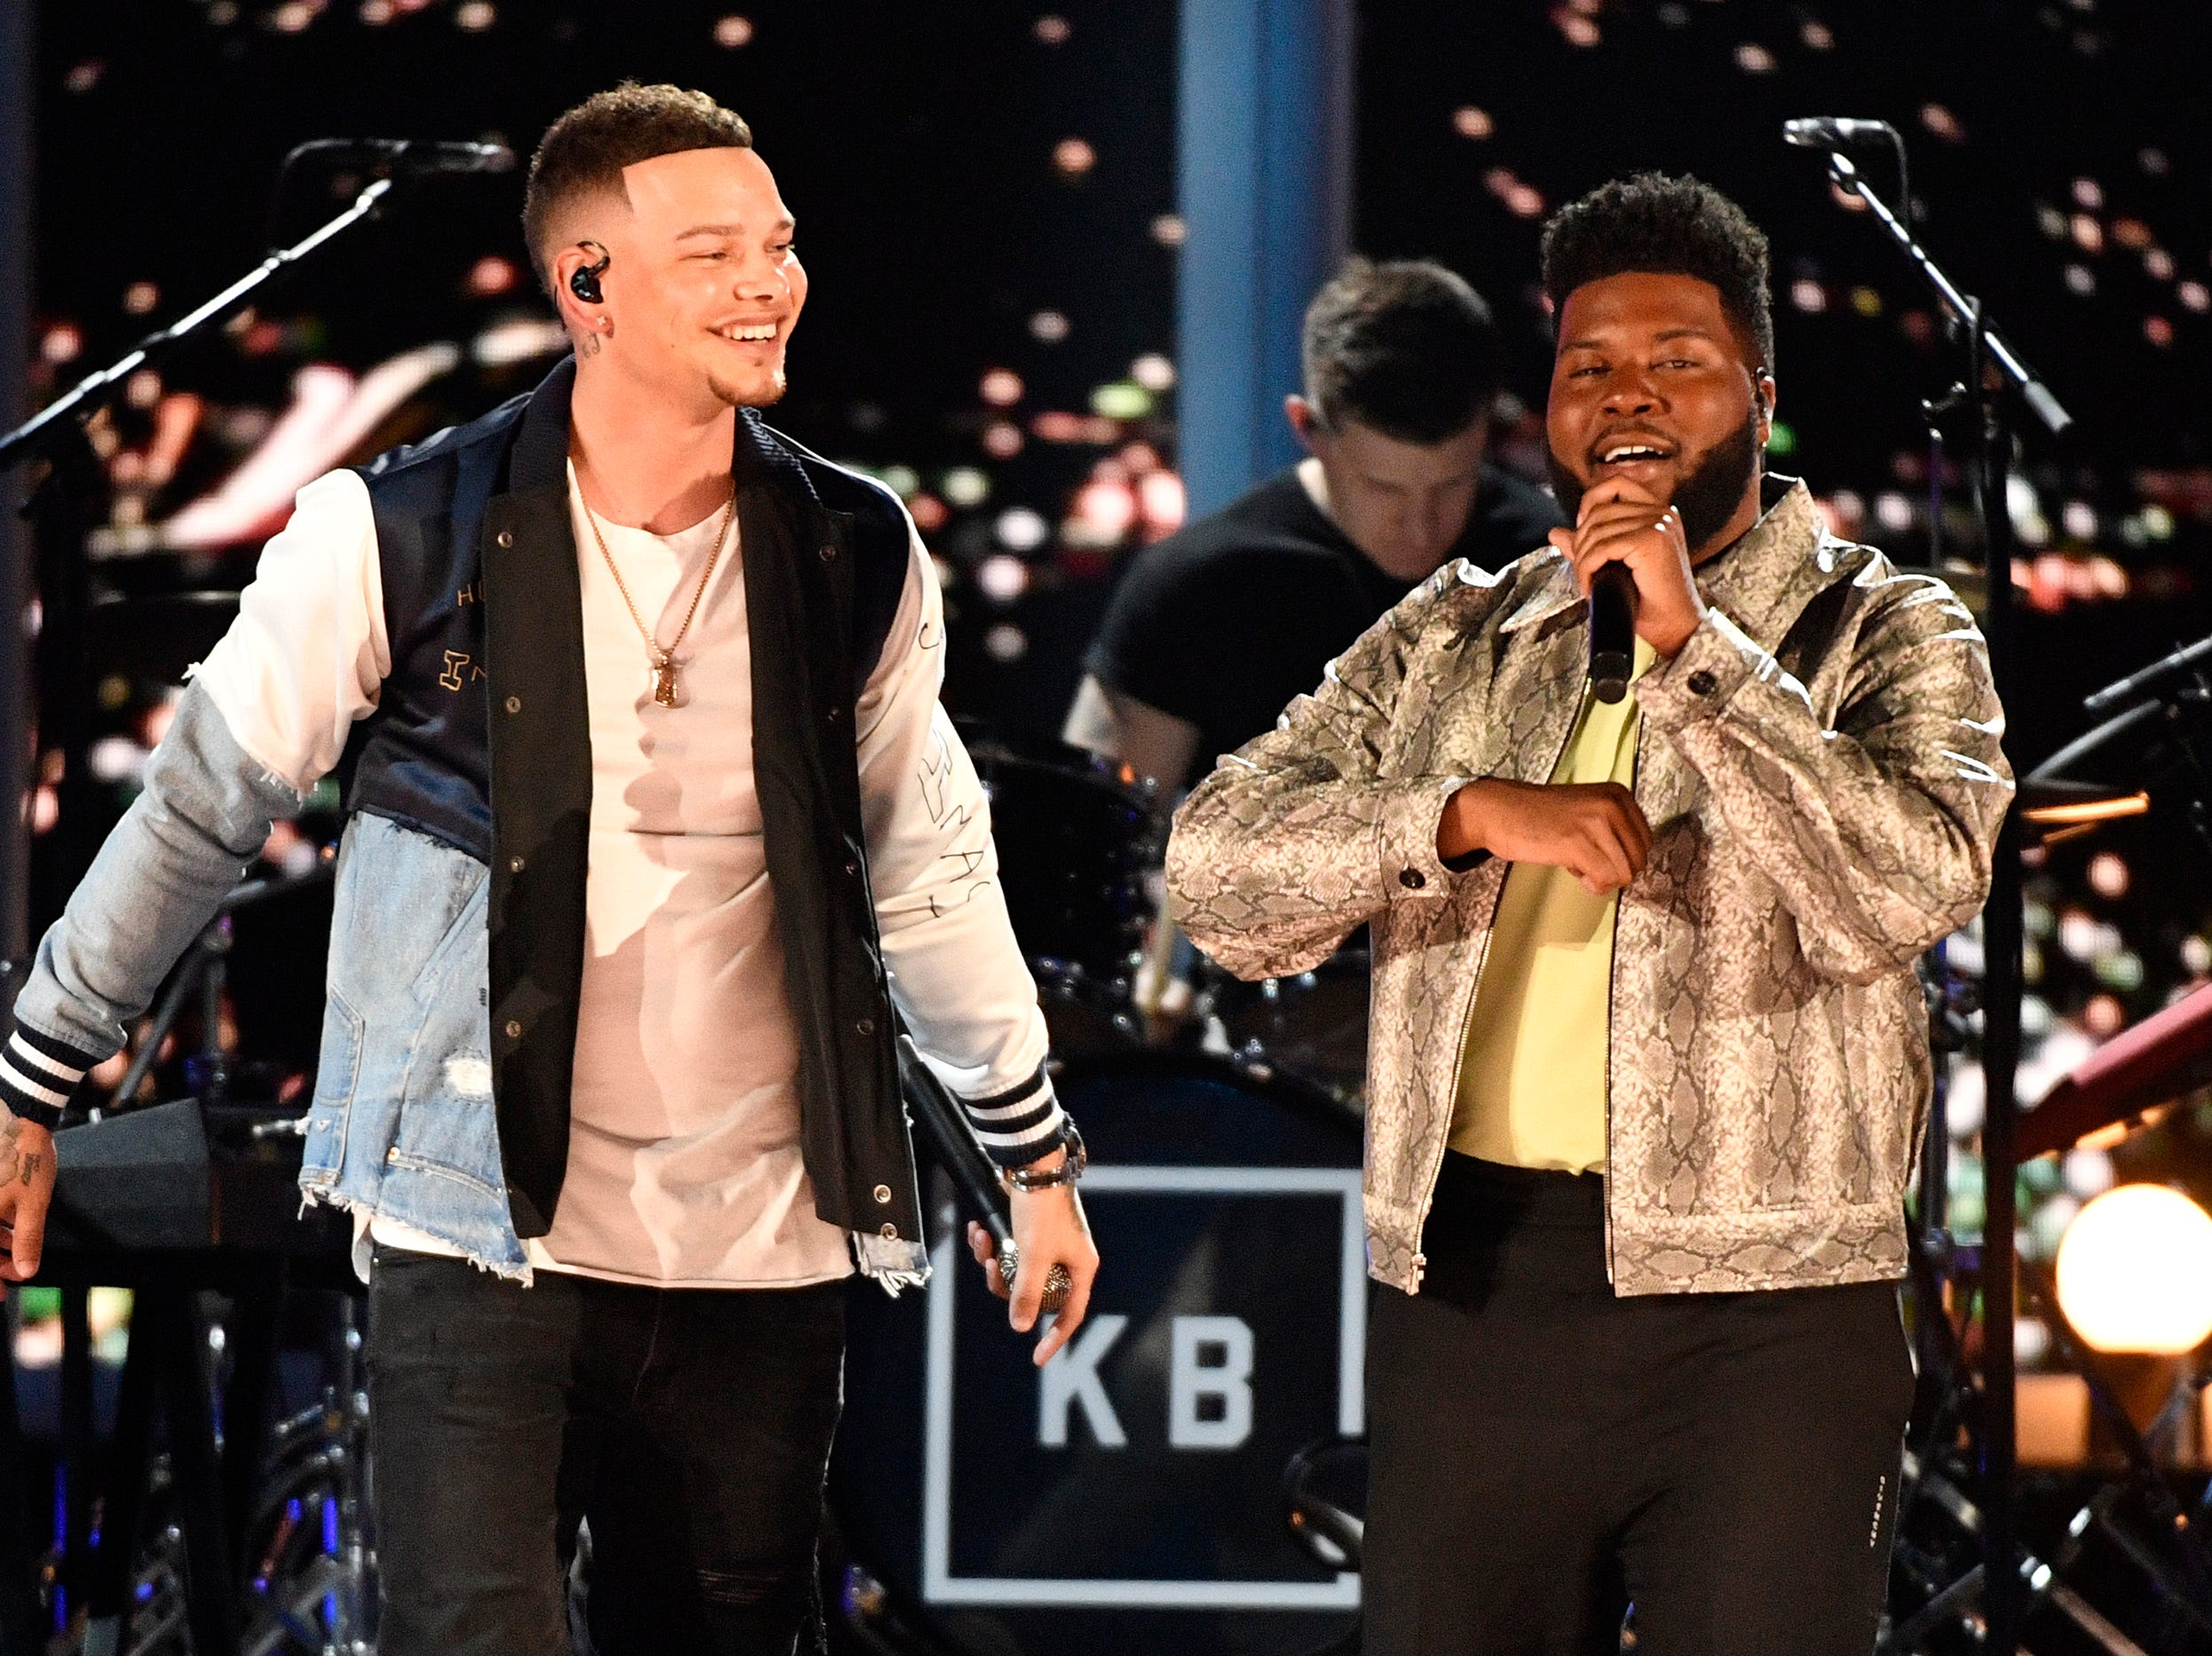 Kane Brown, left, and Khalid perform during the 54TH Academy of Country Music Awards Sunday, April 7, 2019, in Las Vegas, Nev.